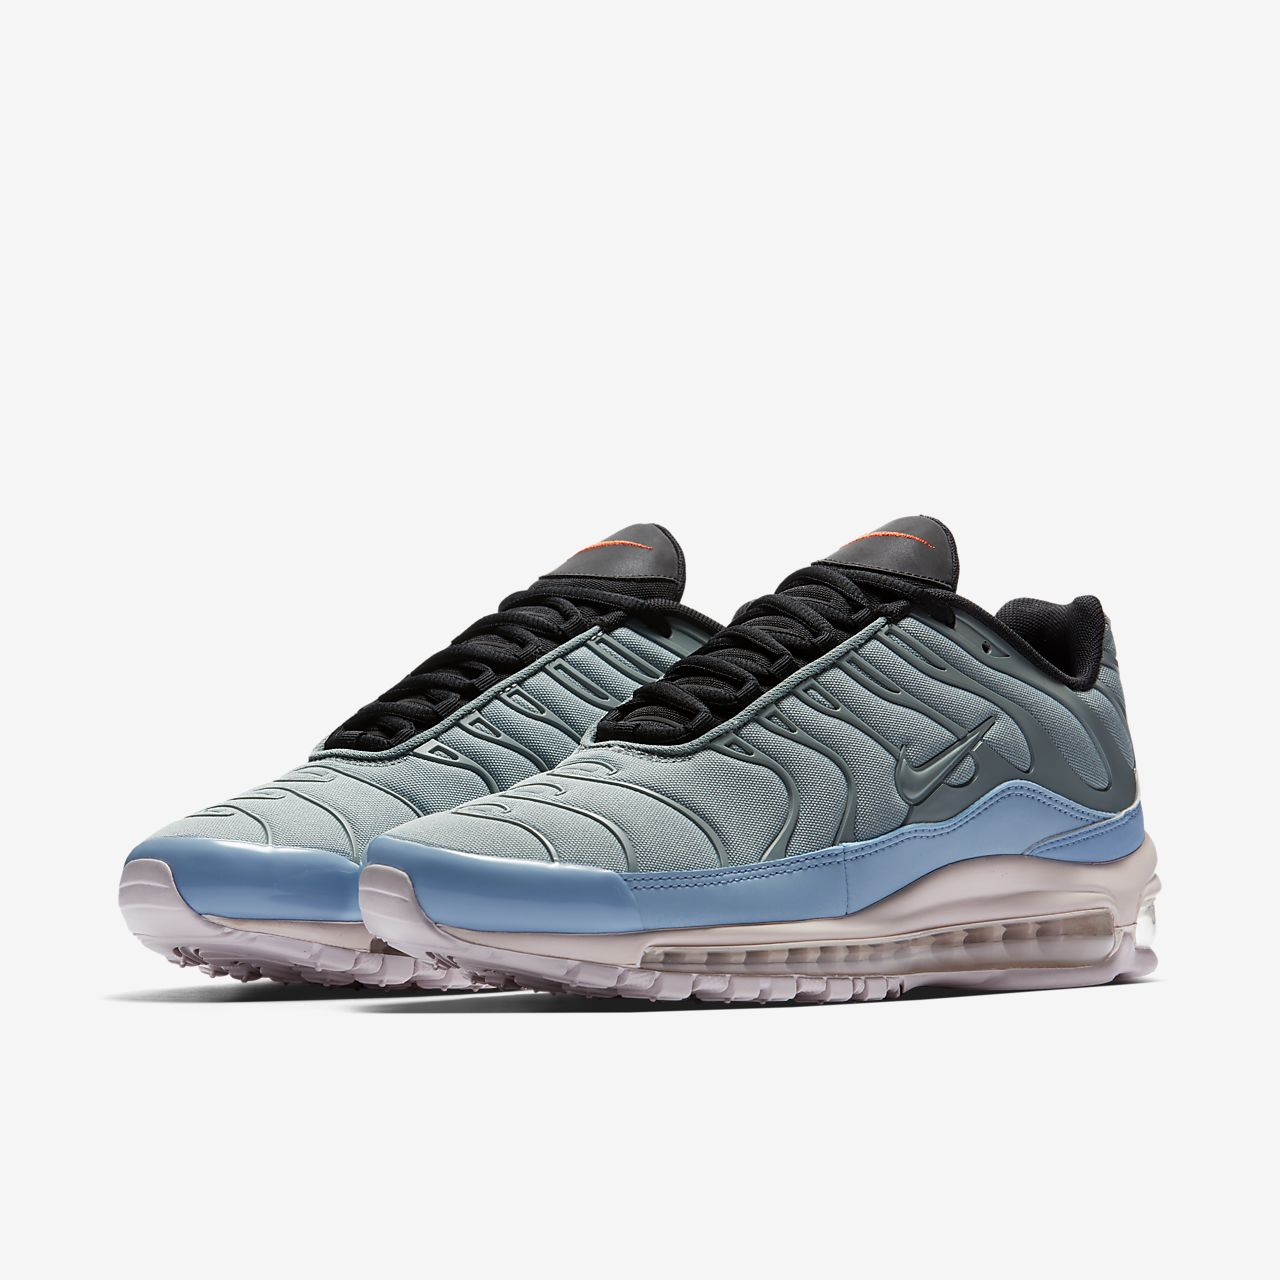 8aa238a4e4a Nike Air Max 97 Plus Men s Shoe. Nike.com AU